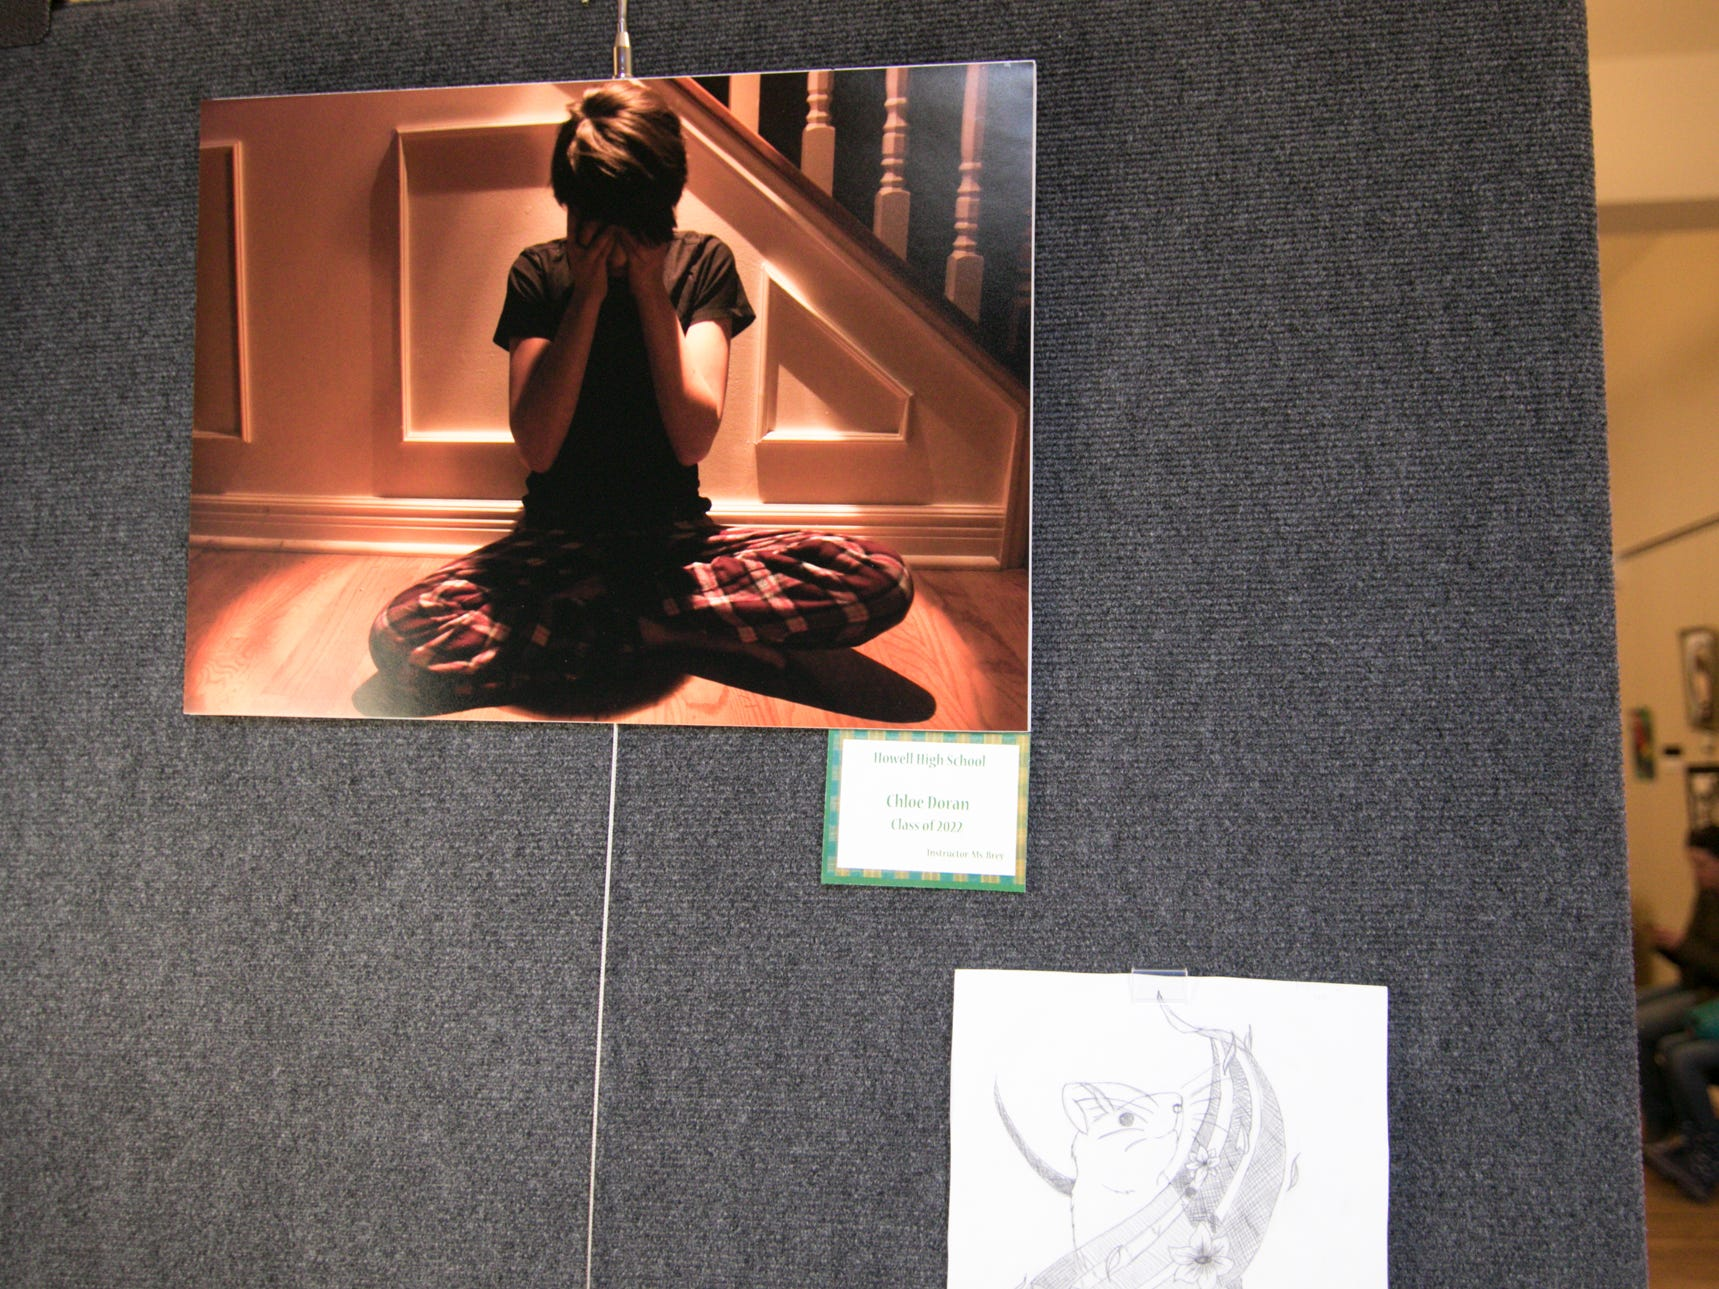 A photograph by Howell High School sophomore Chloe Doran, and a drawing by MaKaila Kramp are among the works on display at the 'Got Art' exhibit, shown Friday, March 8, 2019 at the Howell Opera House.